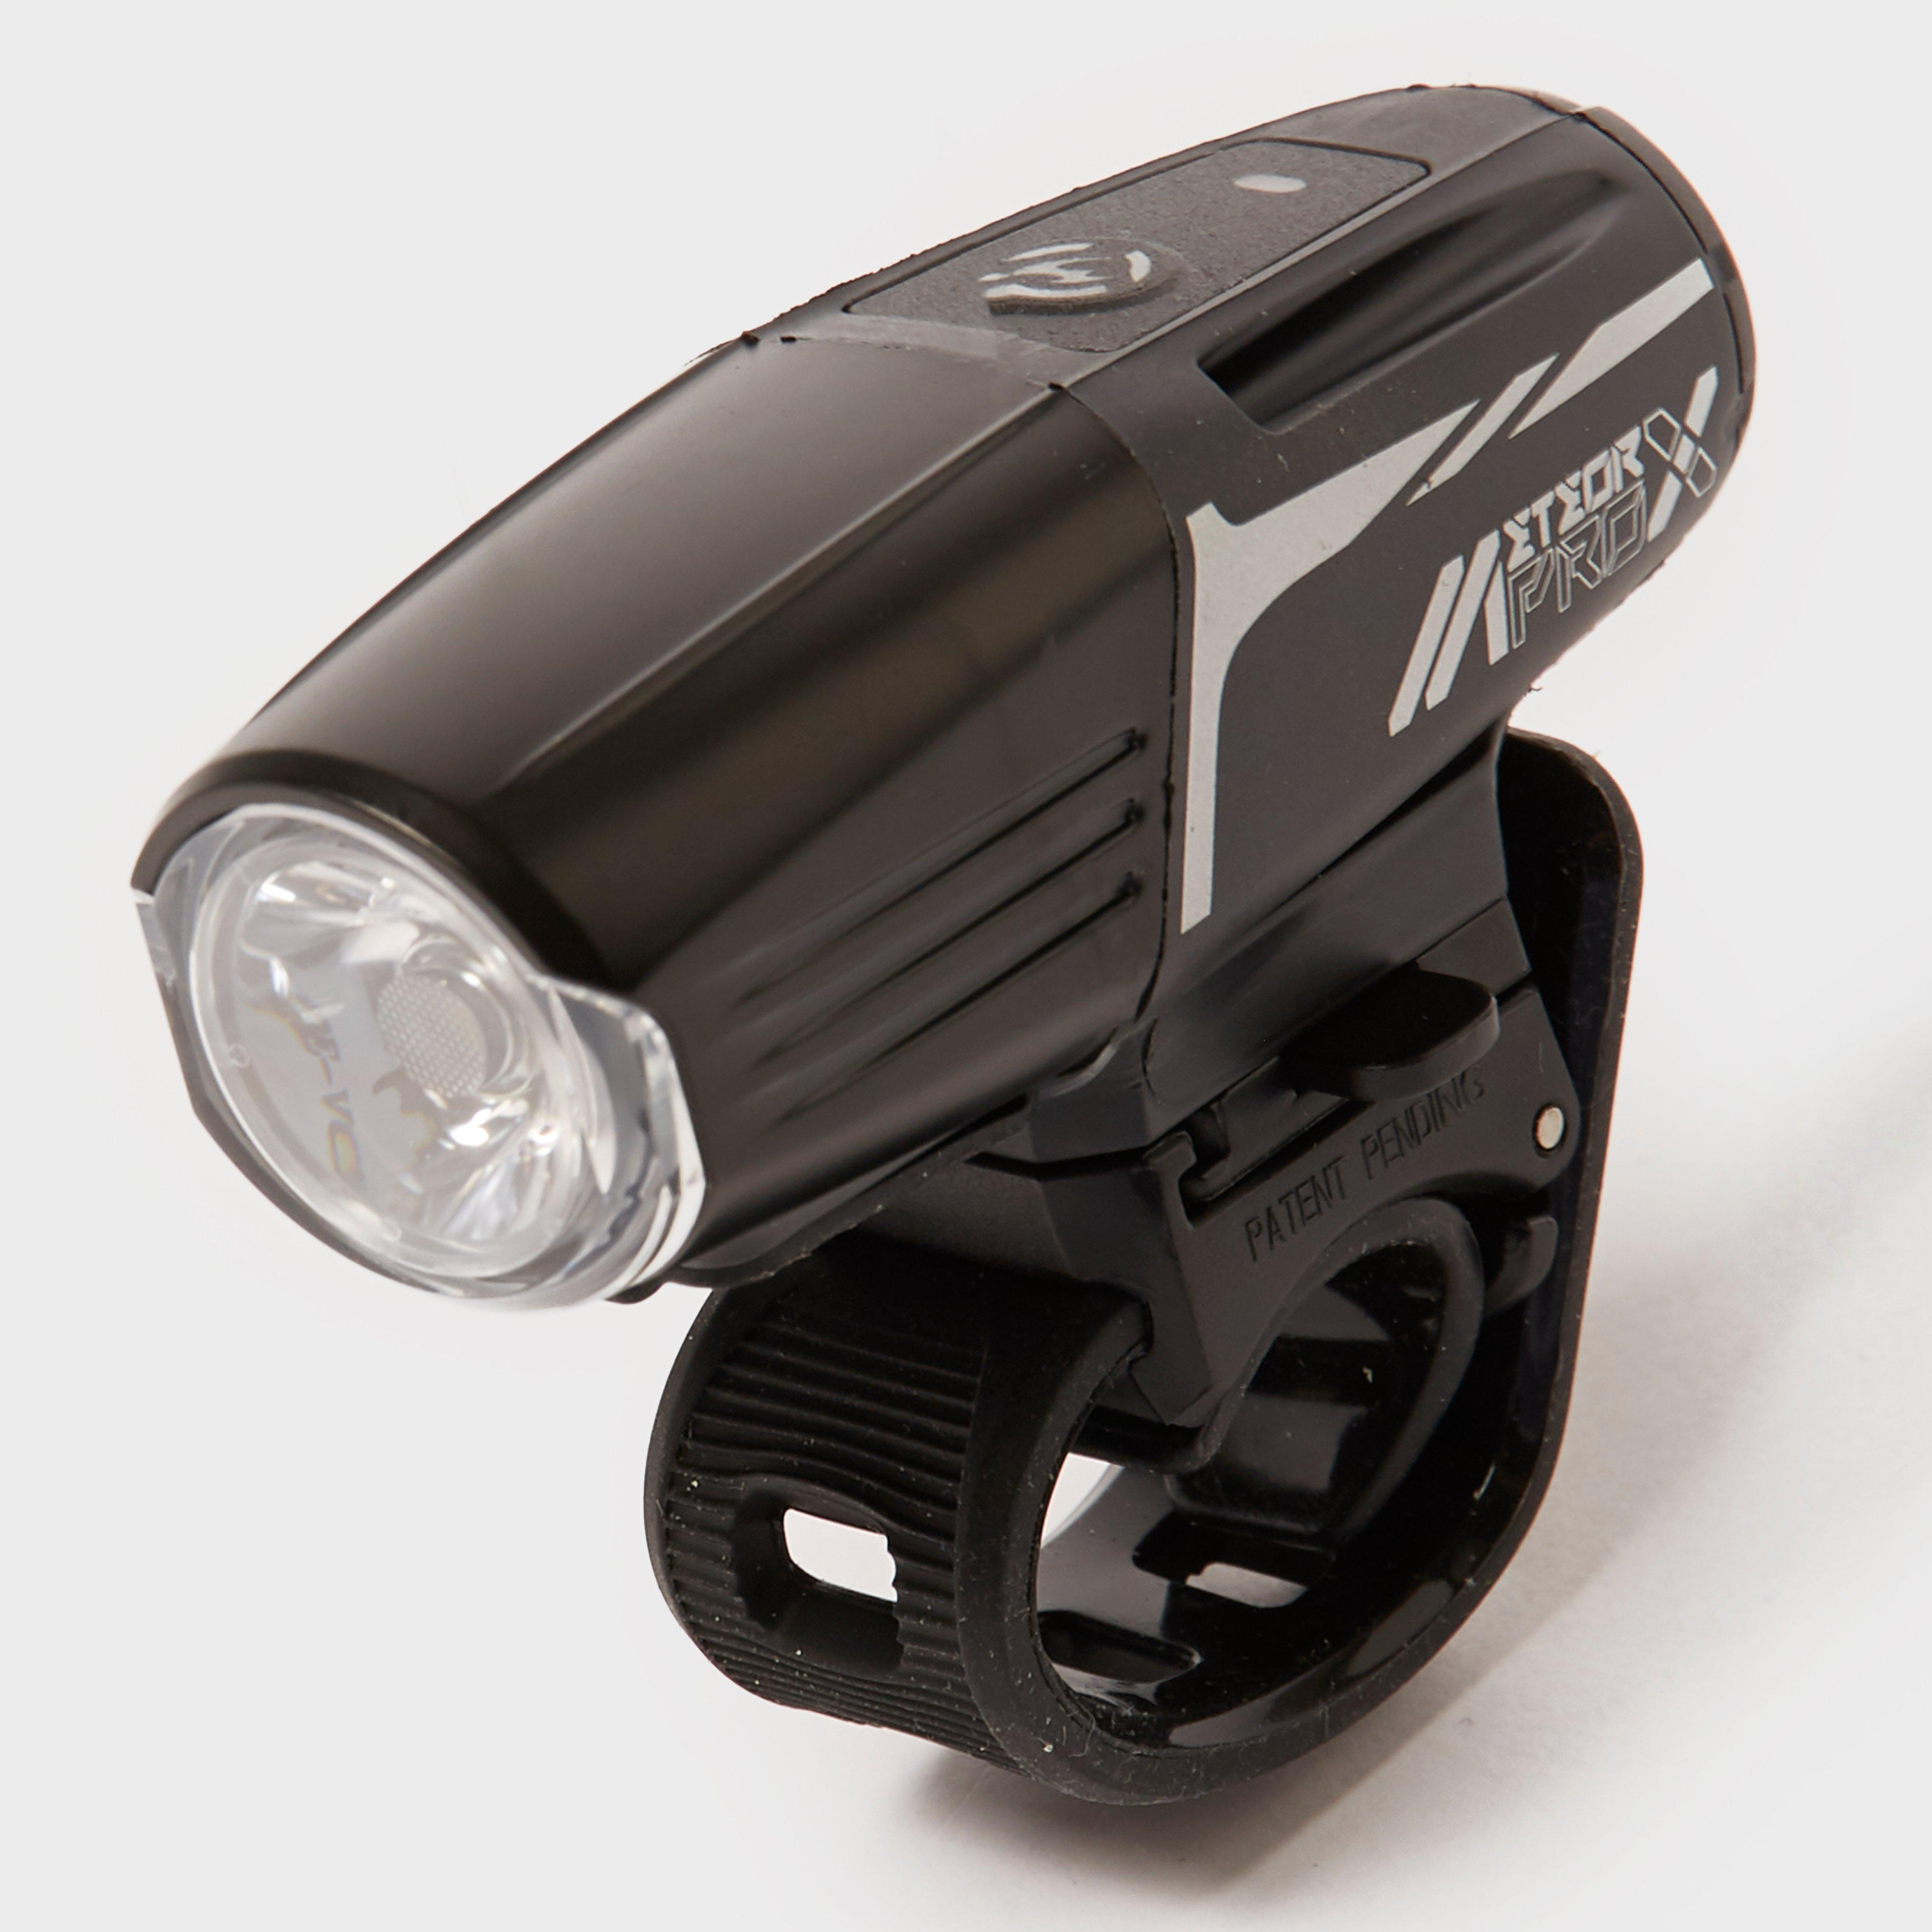 X Auto Pro Bike Light USB Charger Cable Compatible with  Moon Meteor X Auto